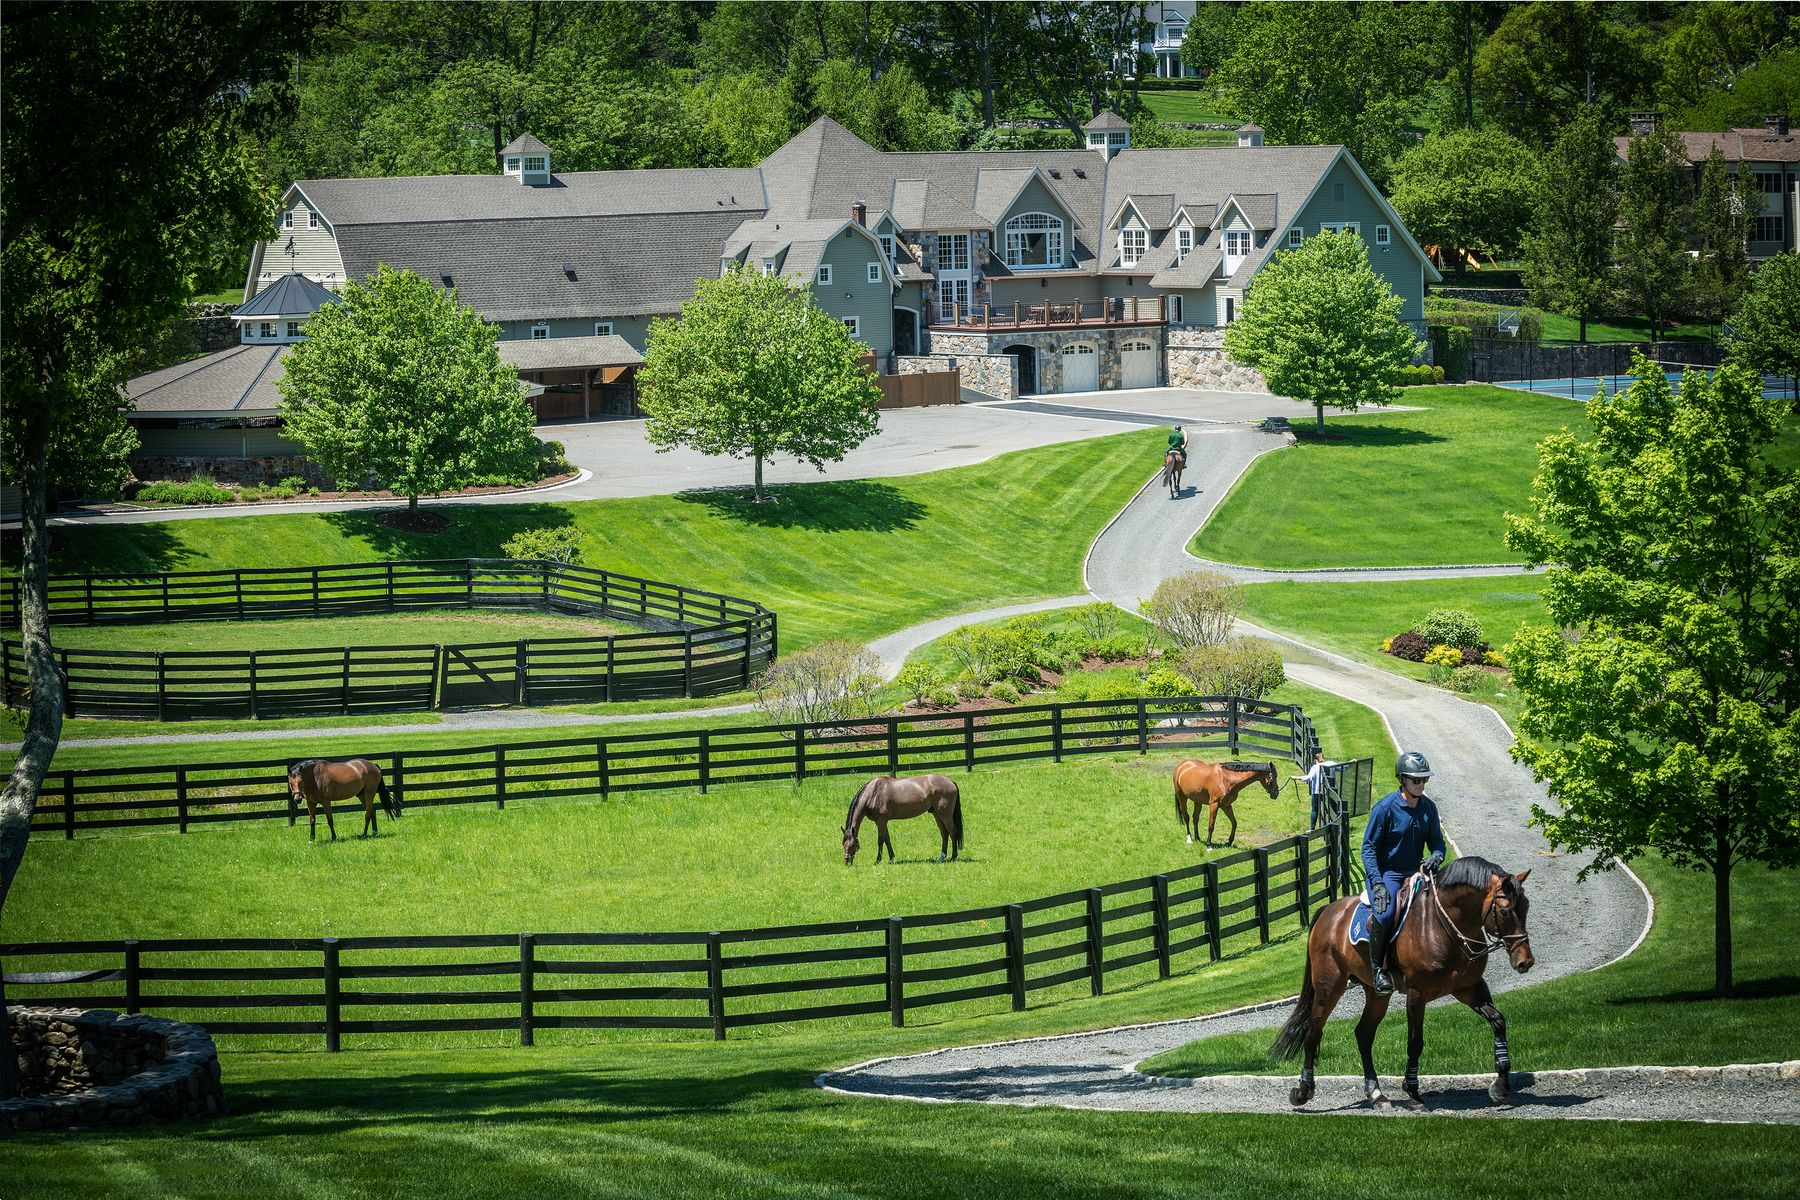 Vineyard Real Estate for Sale at Double H Farm 9 Old Stagecoach Road Ridgefield, Connecticut 06877 United States